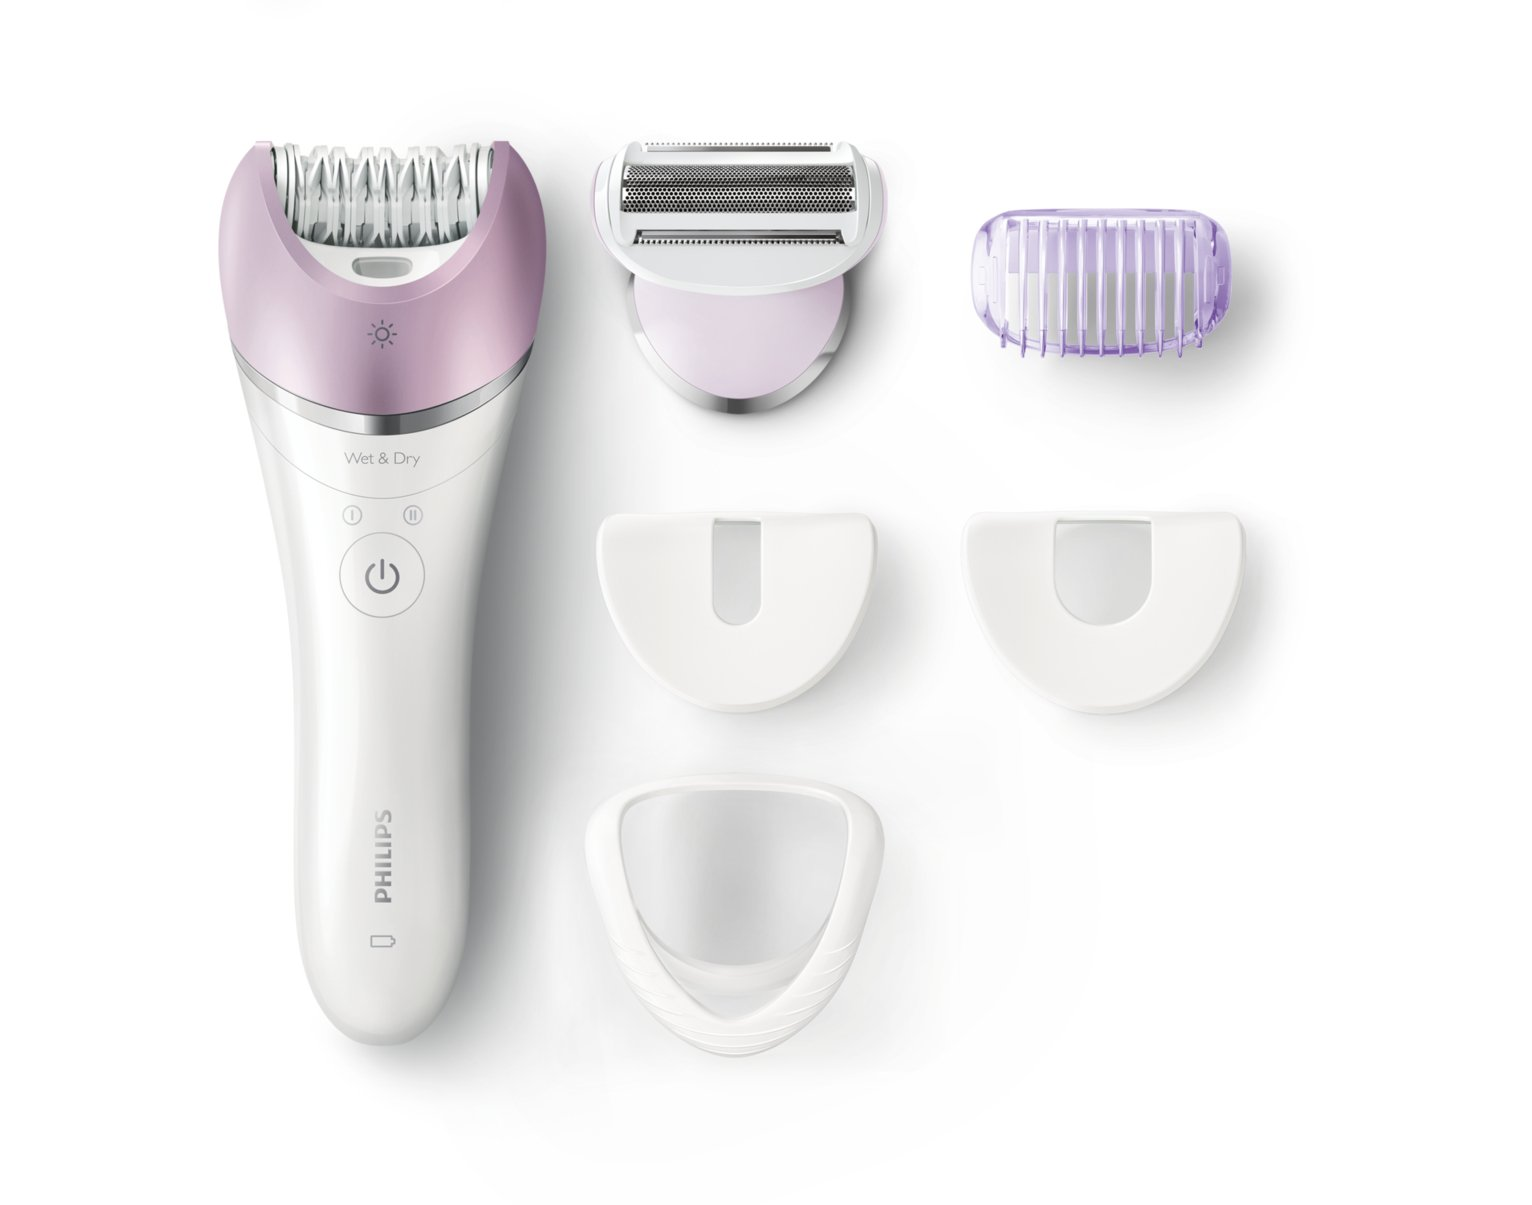 Philips Satinelle Advanced Wet and Dry Cordless Epilator from Philips